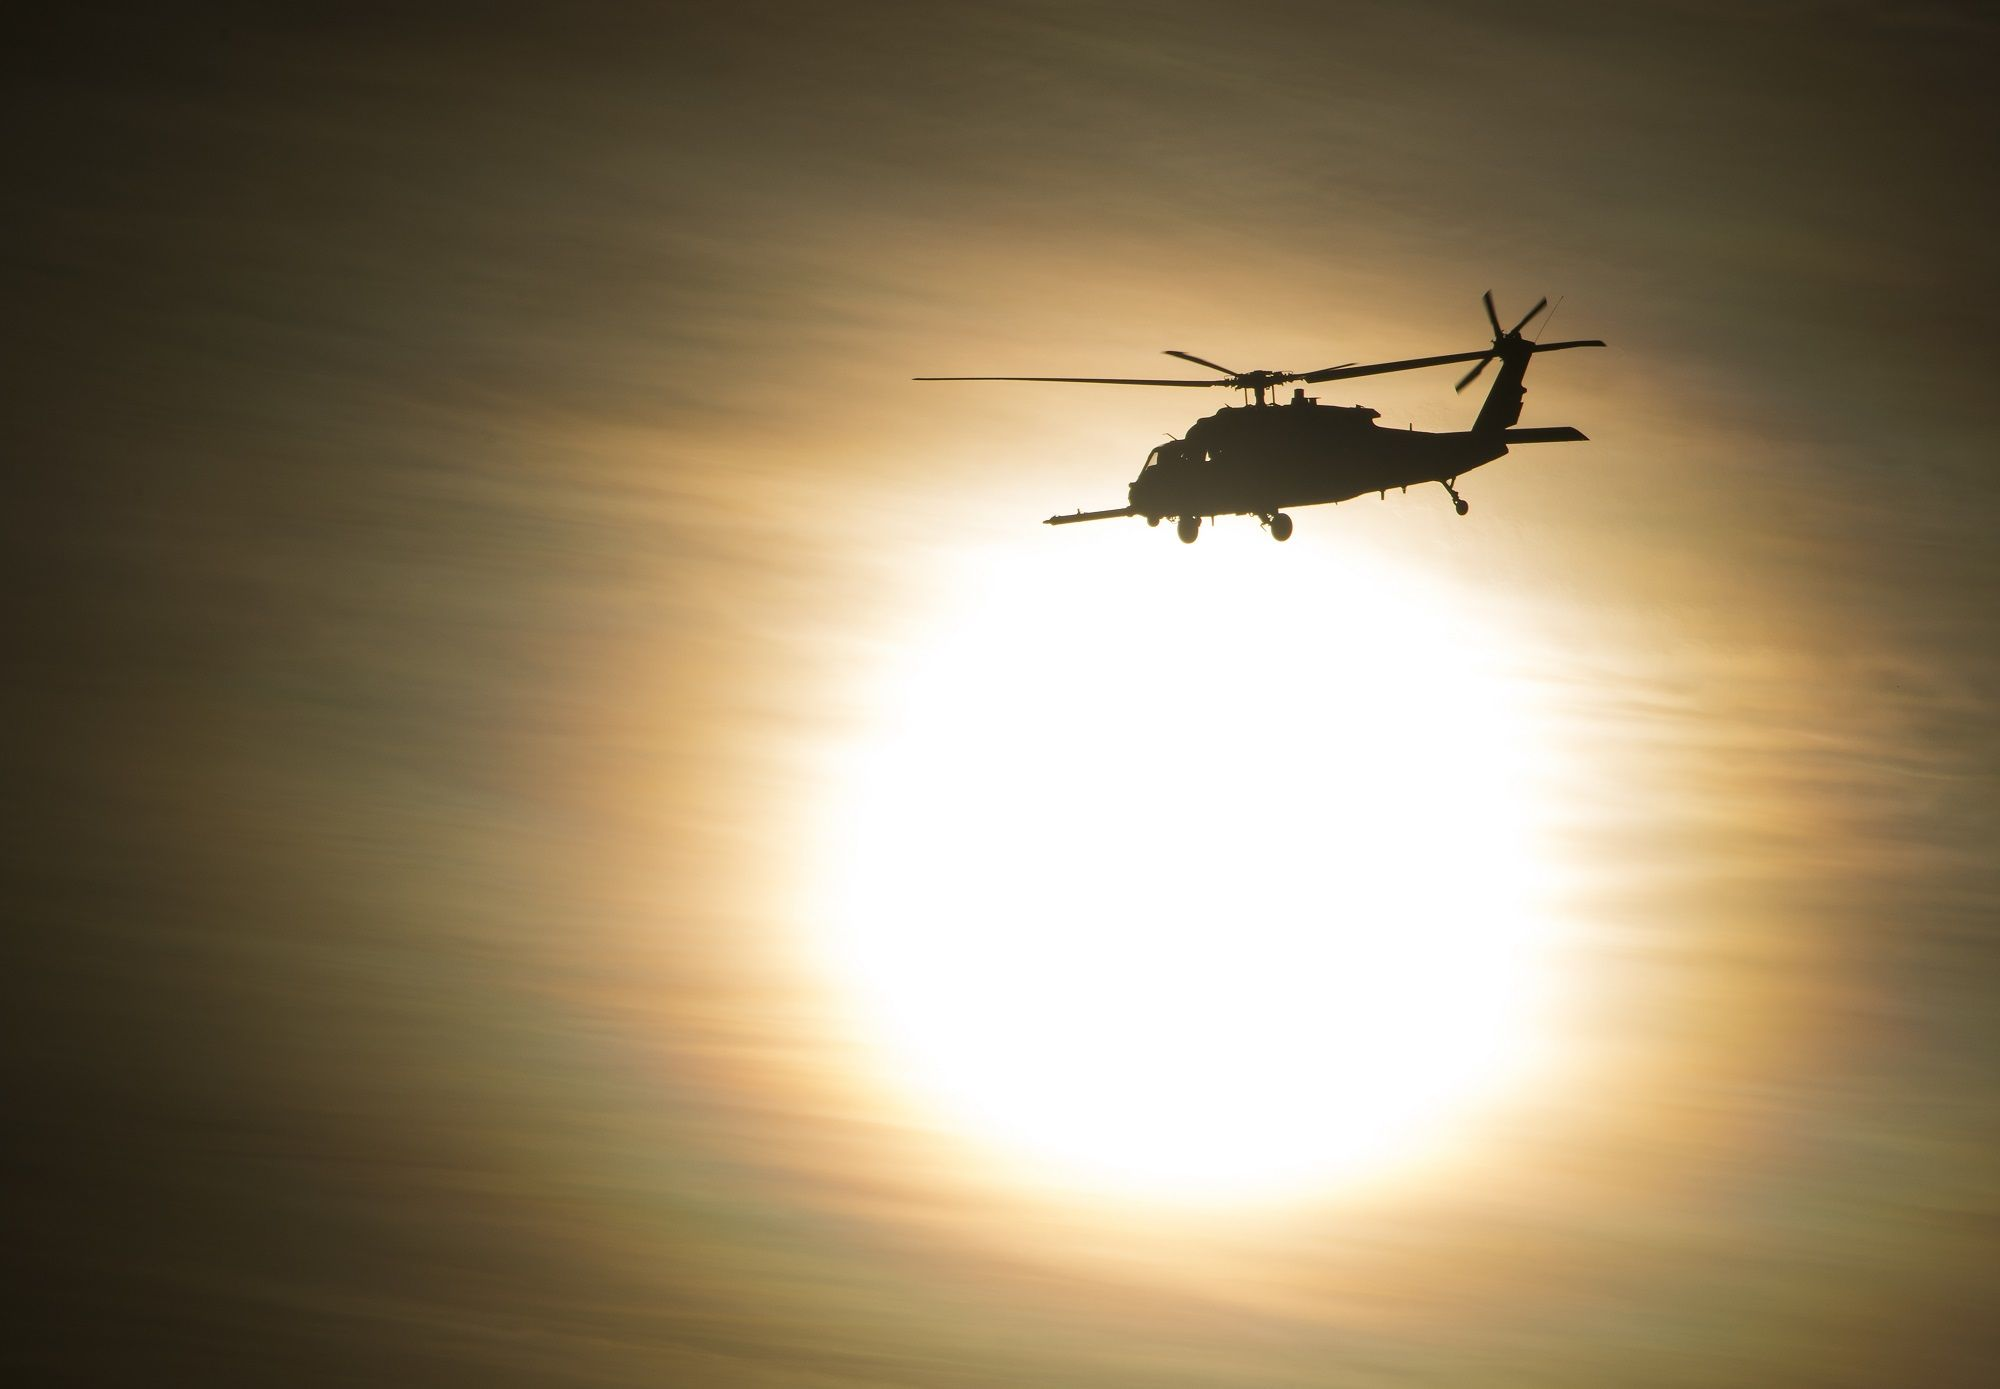 The USAF is preparing to replace HH-60 PAVE HAWK helicopters with the Combat Rescue Helicopter. (Photo: DVIDS)